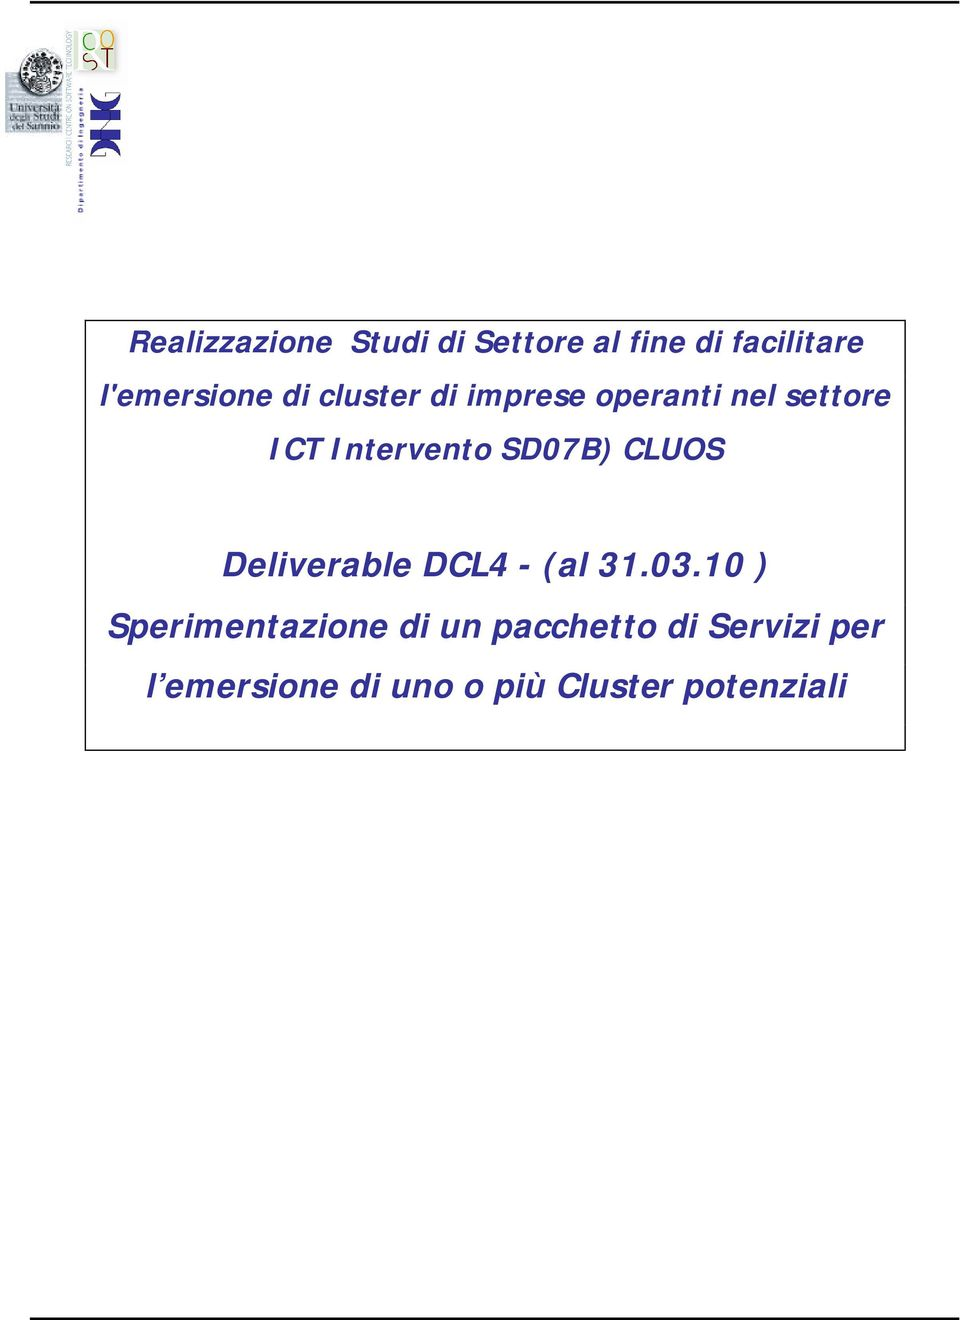 CLUOS Deliverable DCL4 - (al 31.03.